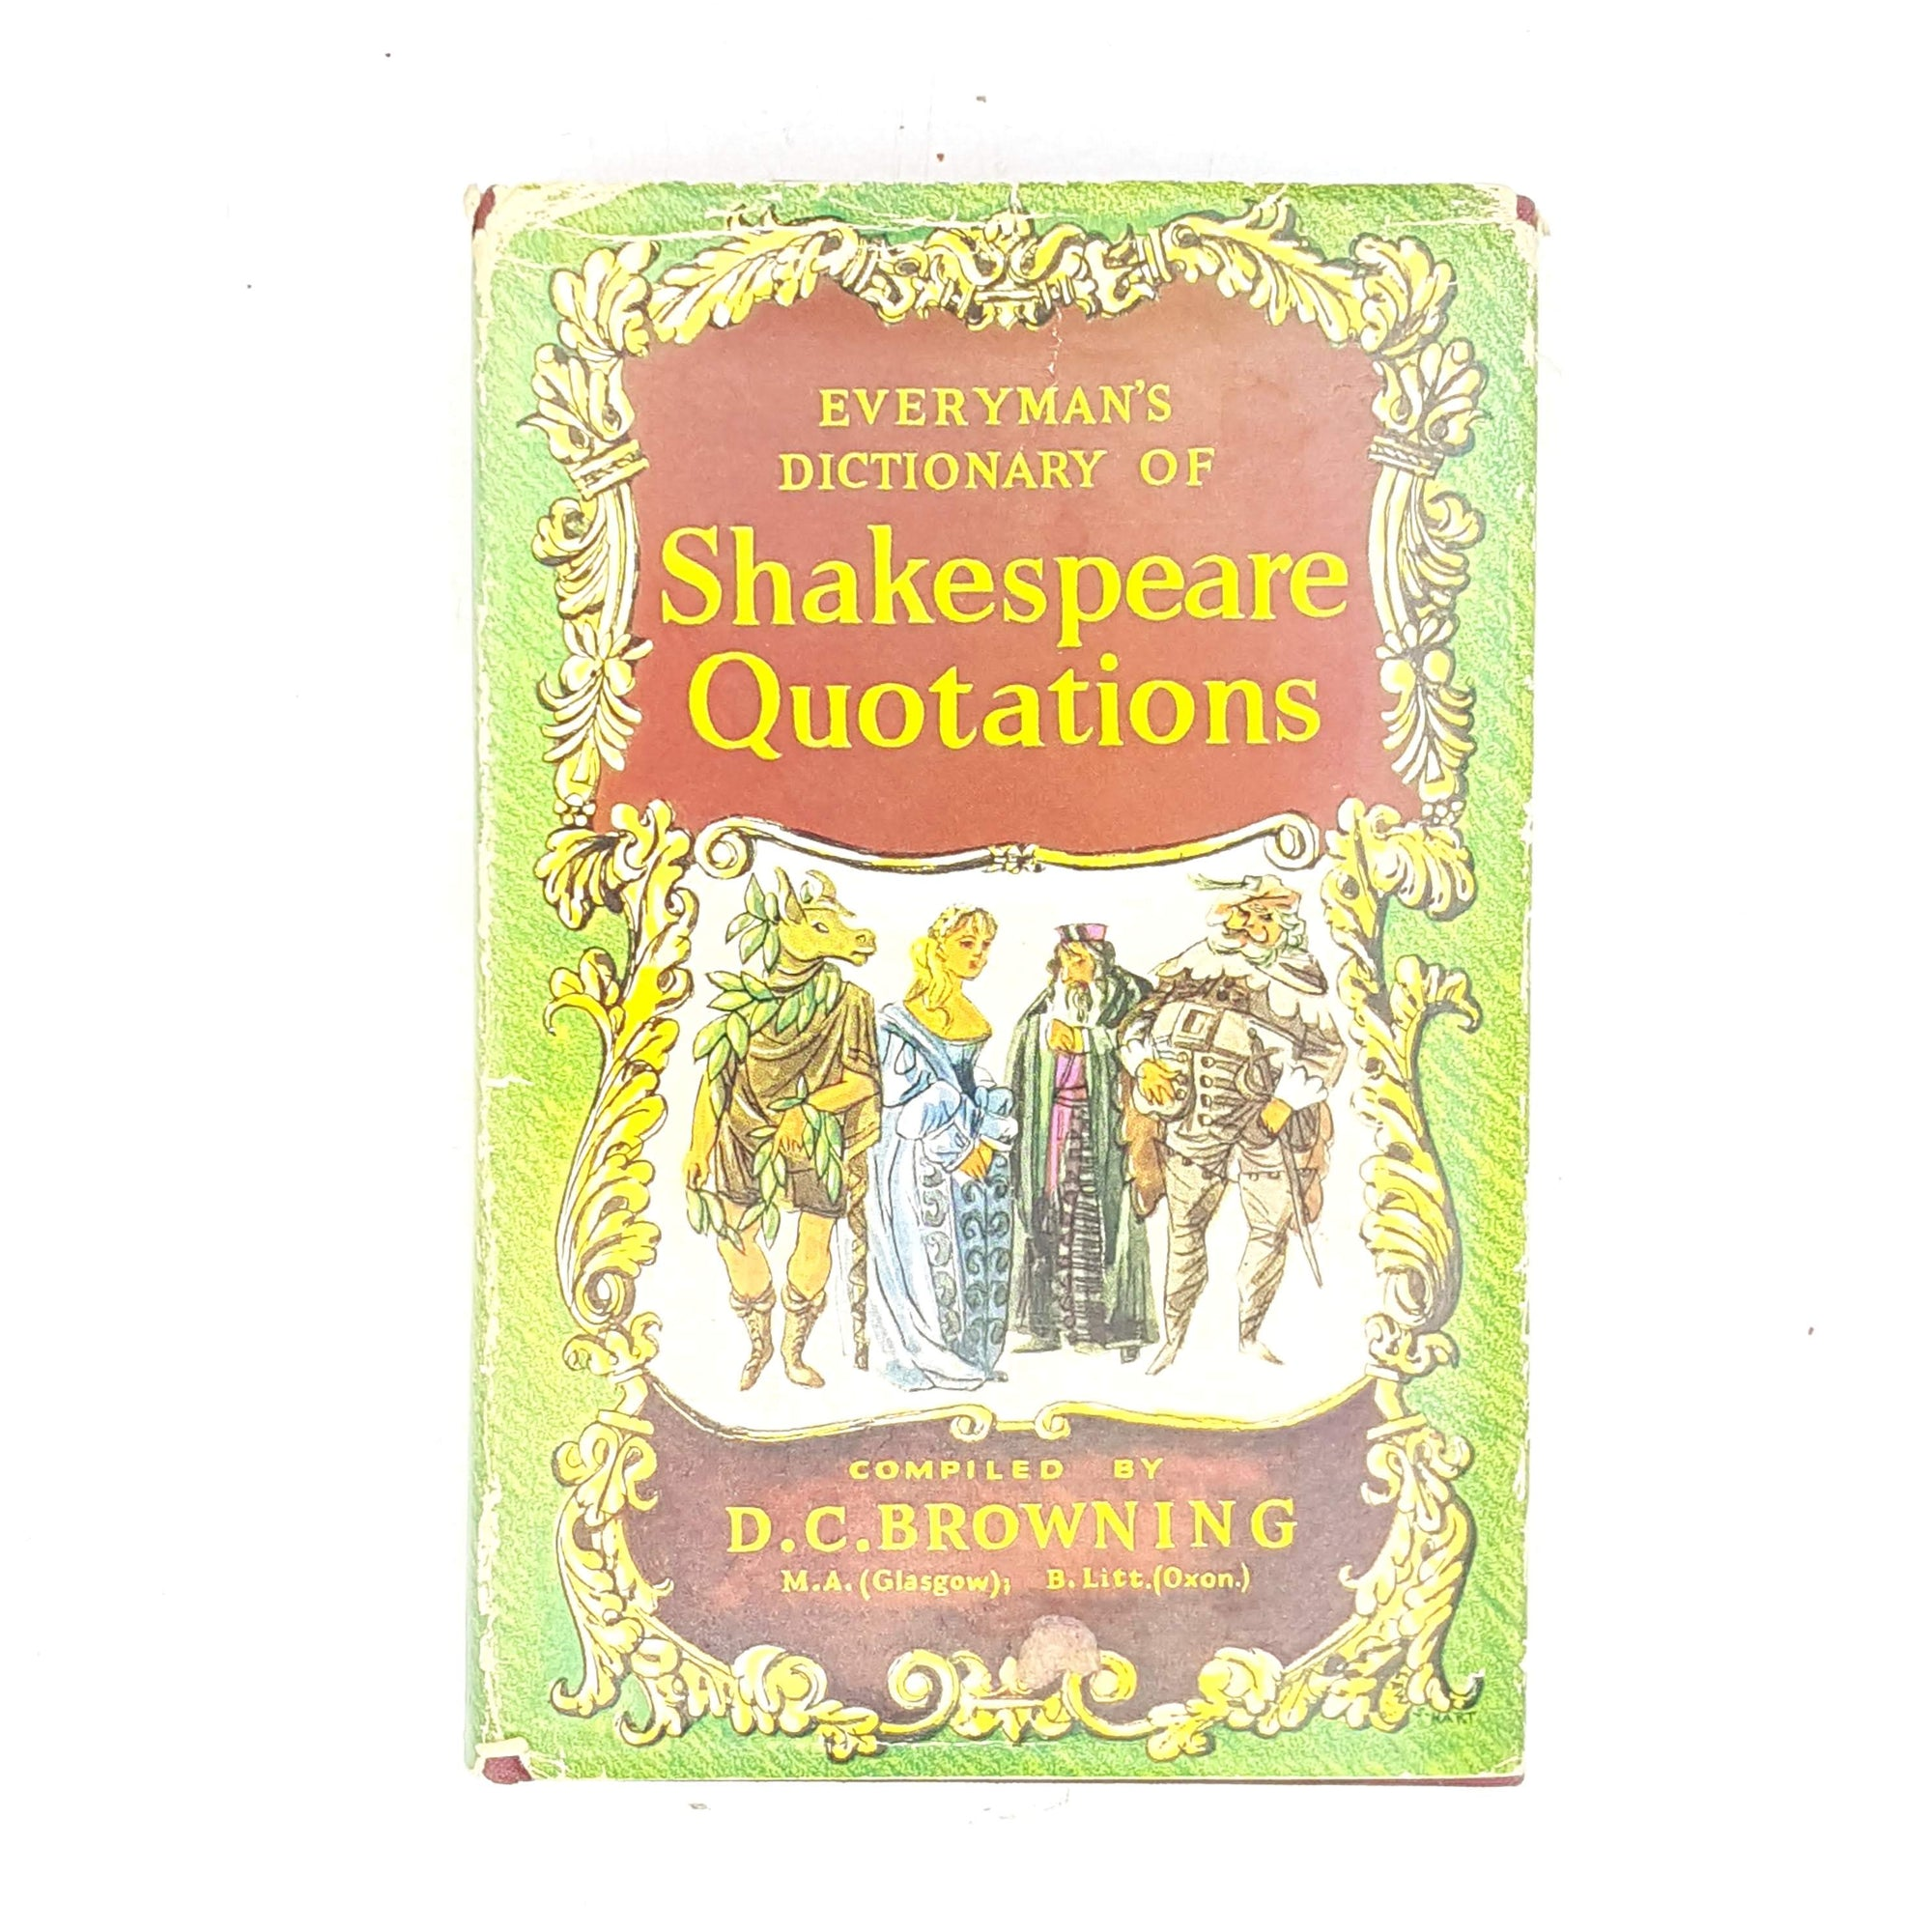 Vintage Everyman's Dictionary of Shakespeare Quotations 1964